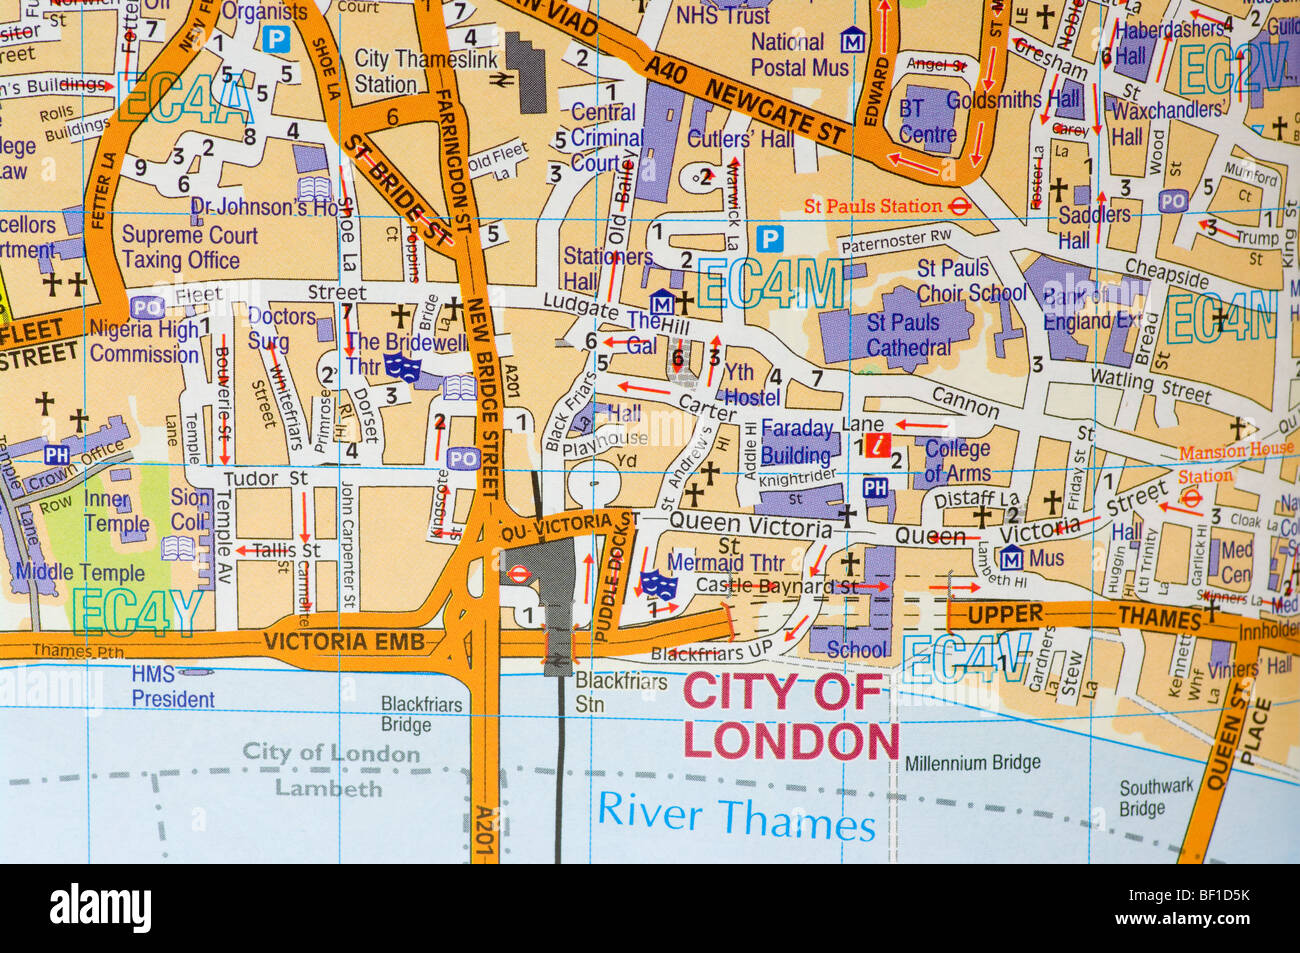 City Map Of England.Street Road Map Of The City Of London Uk Stock Photo 26462511 Alamy